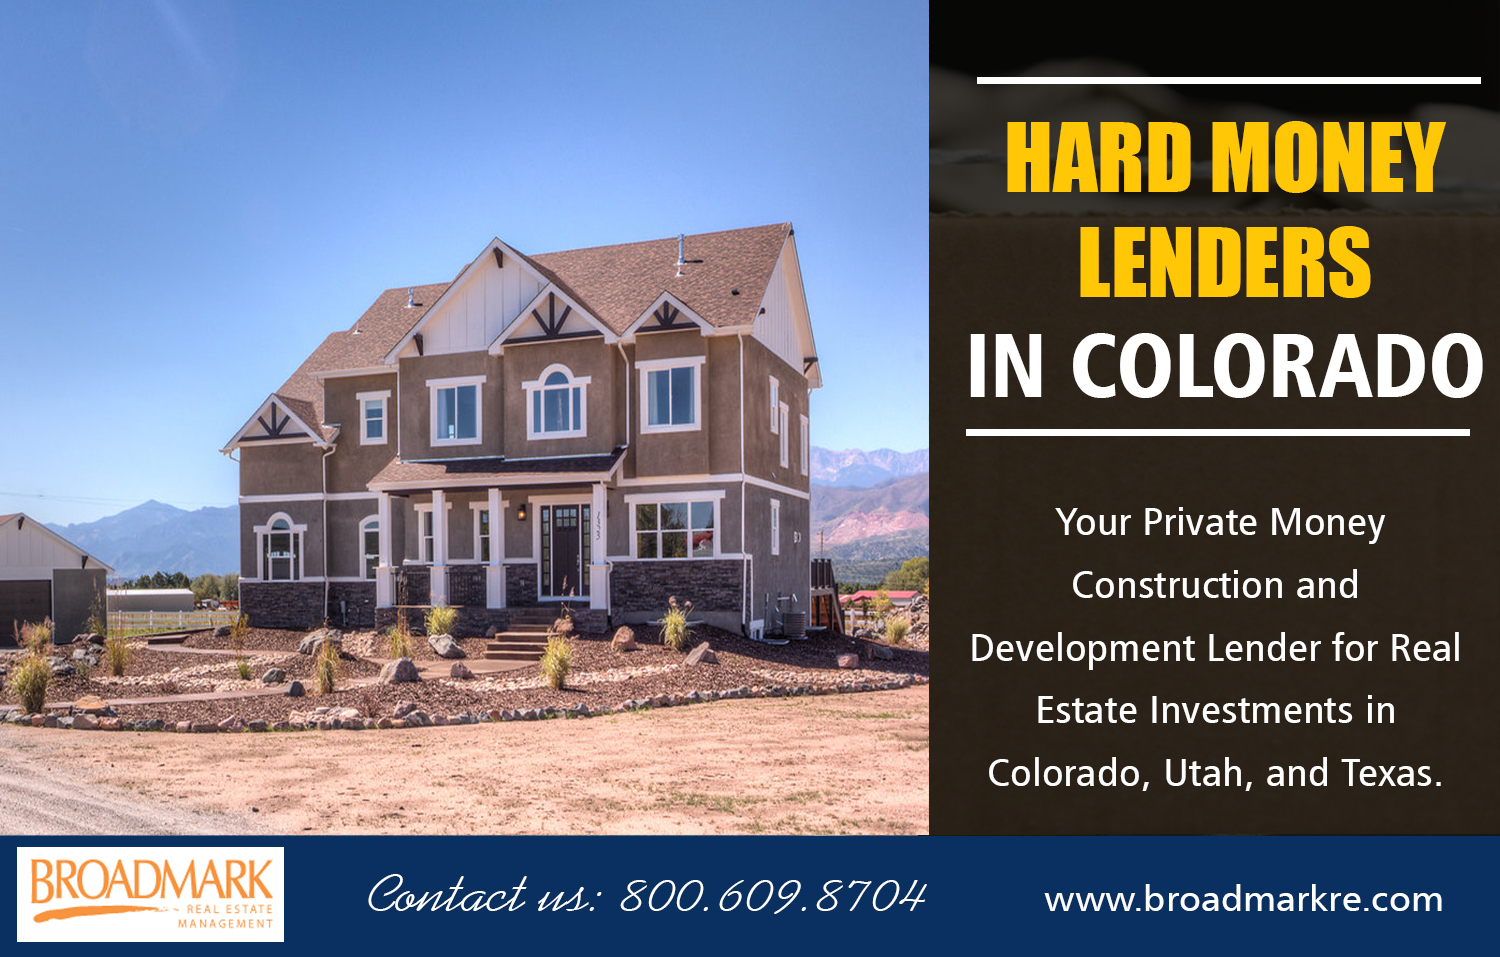 Hard Money Lenders in Colorado